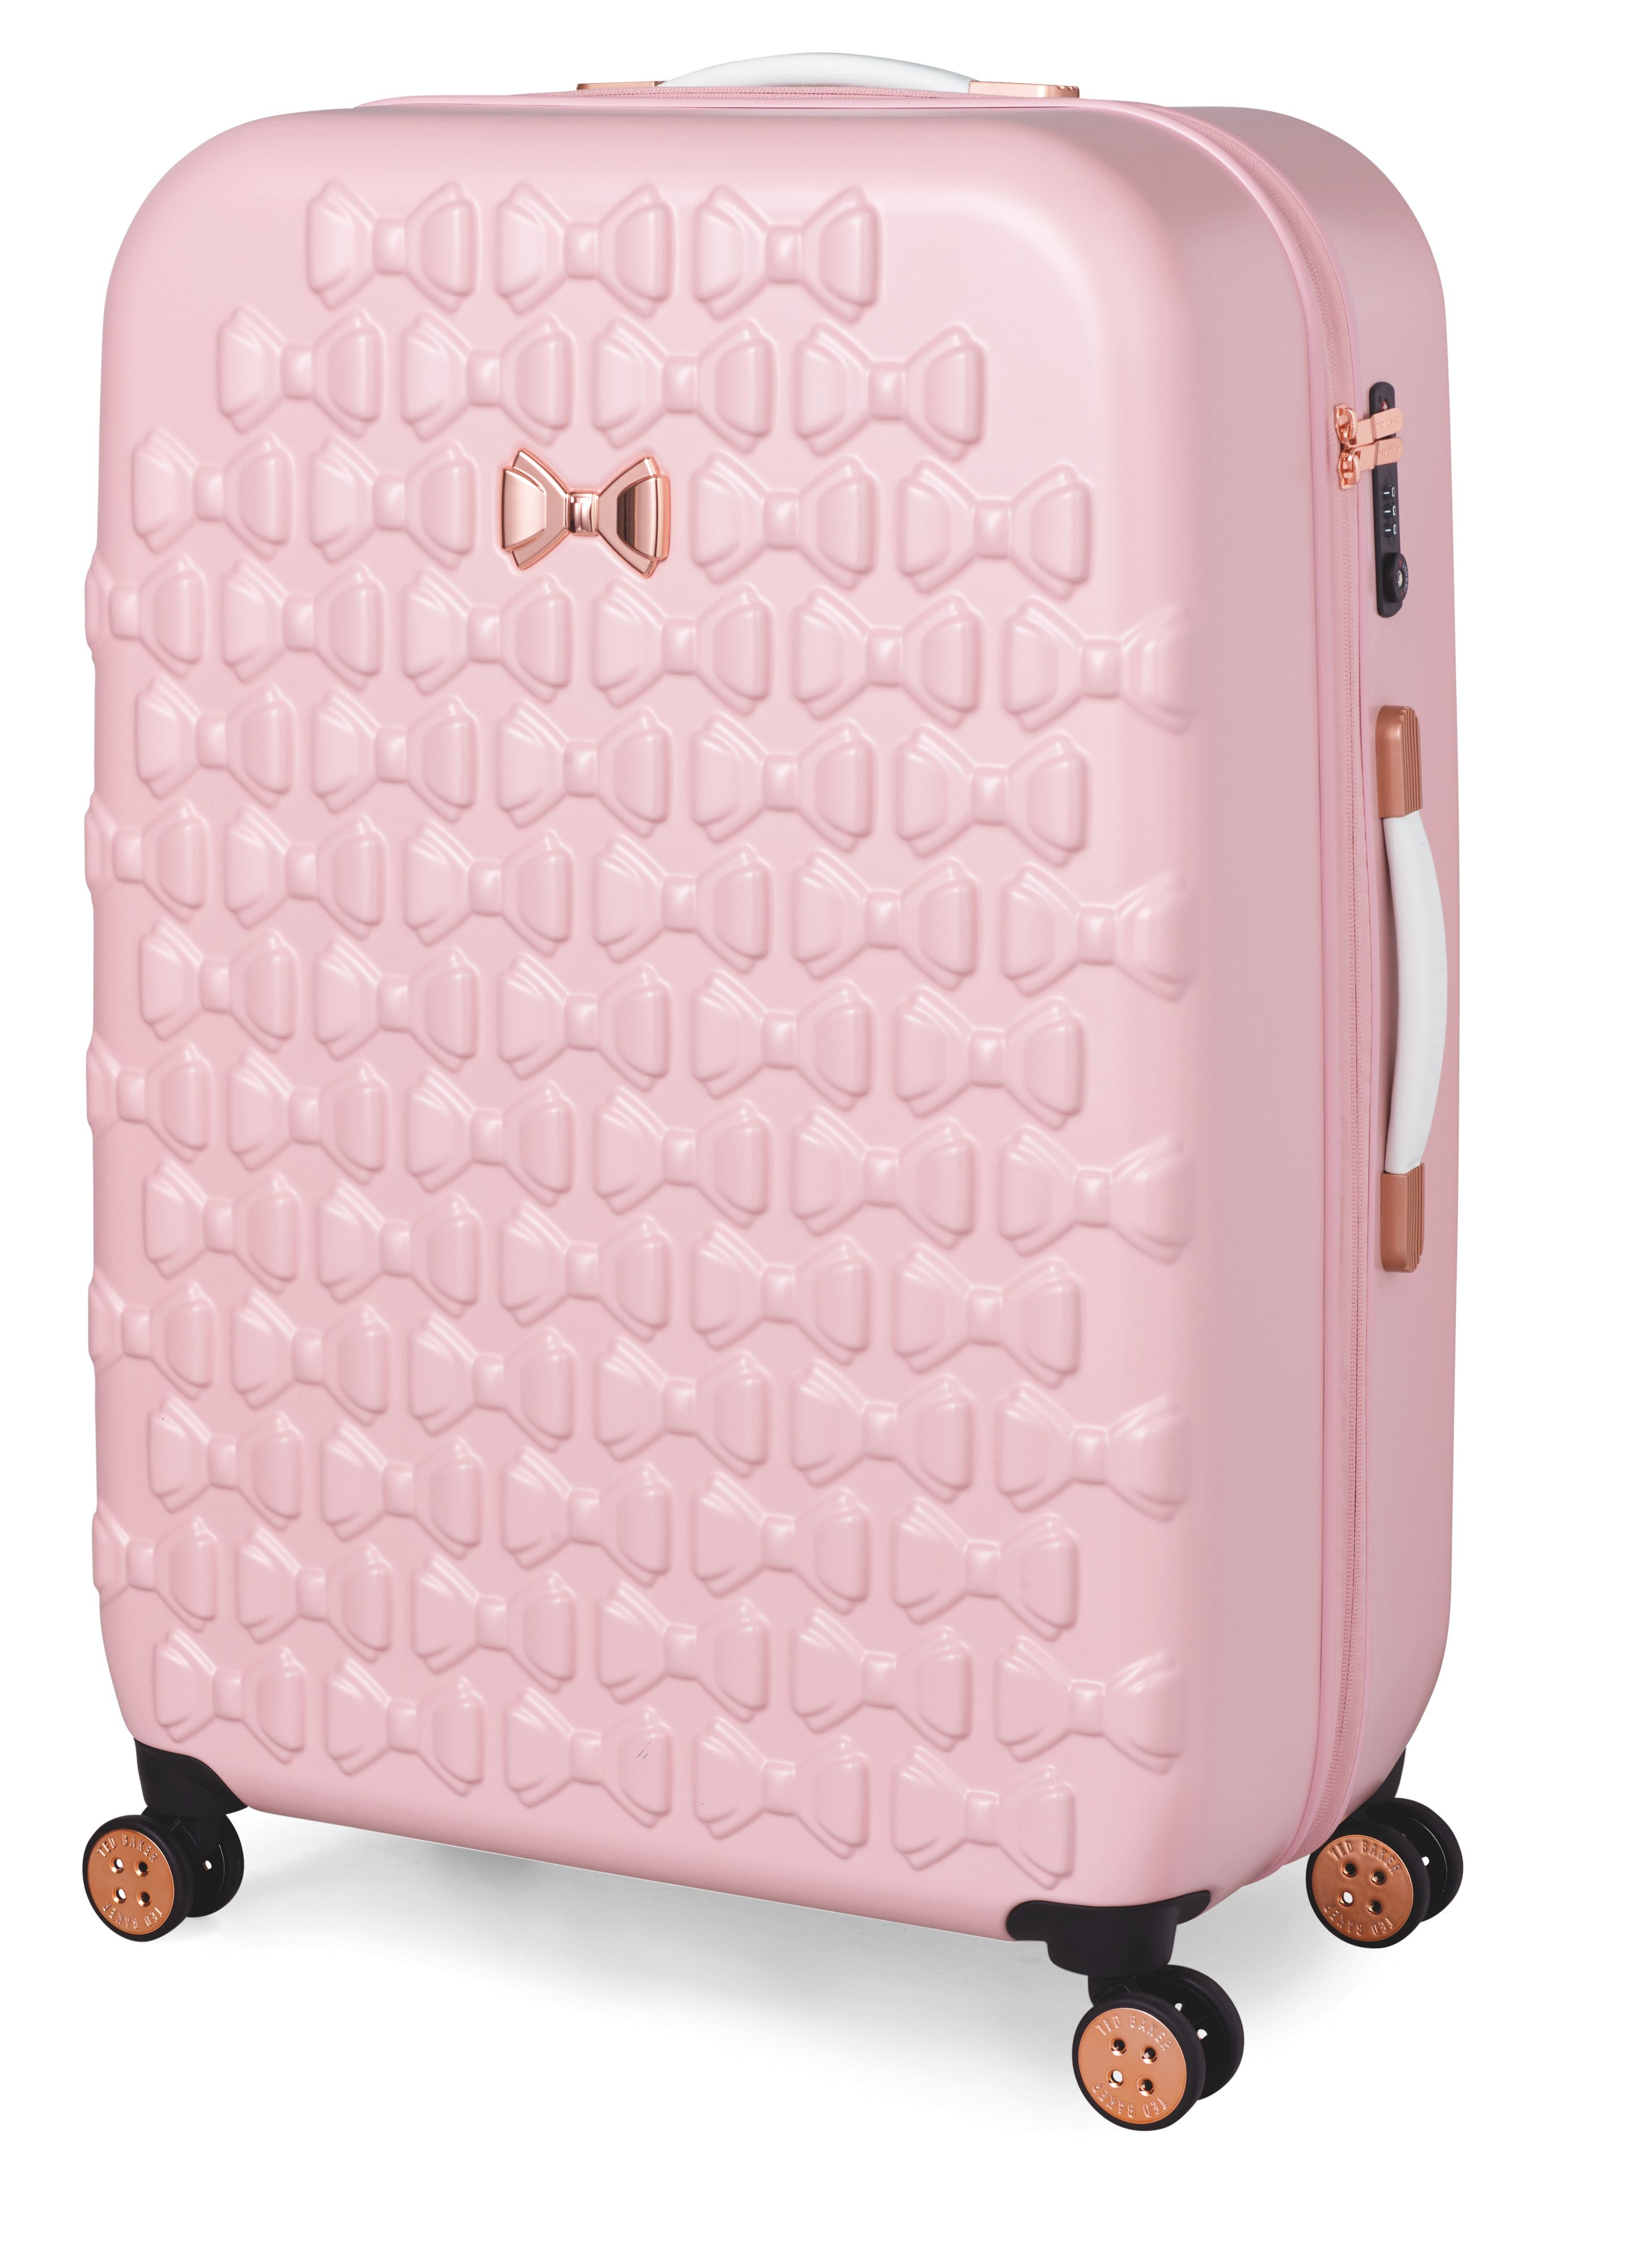 295a0bd9e Ted Baker Beau Pink 4 Wheel Large Suitcase